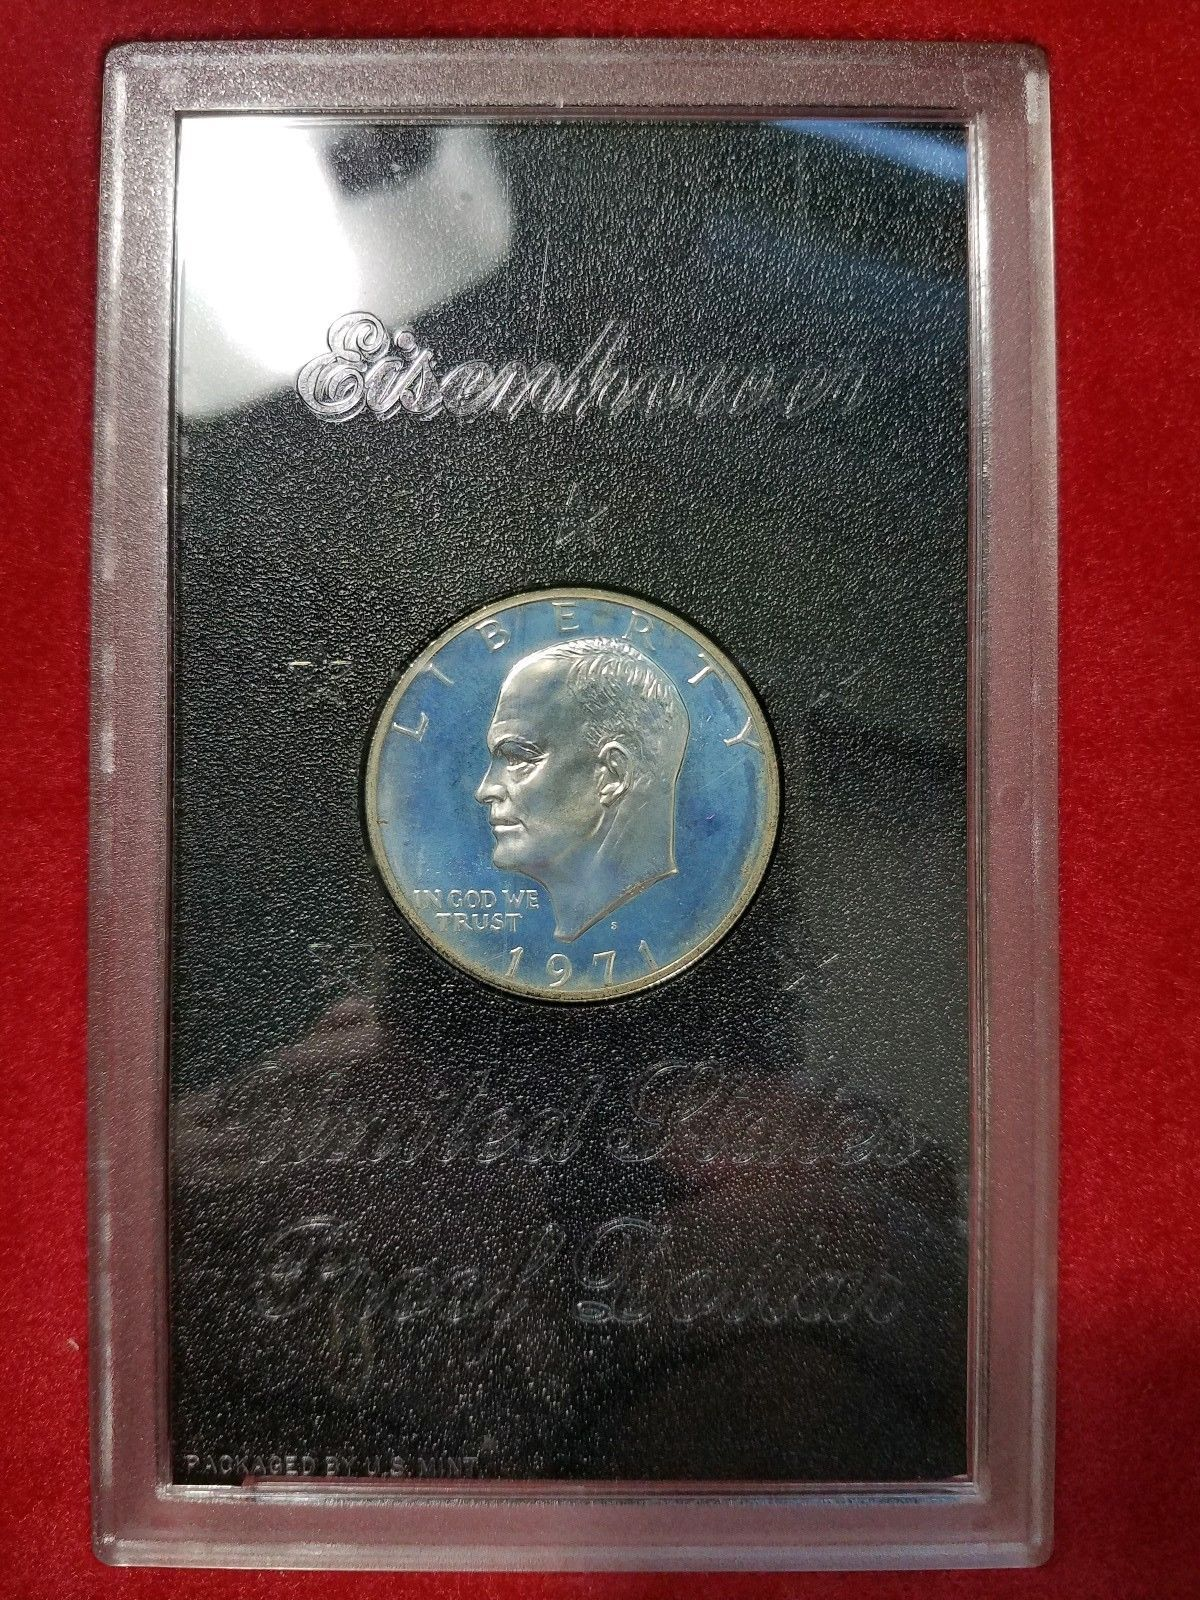 1971s Eisenhower Proof Dollar in brown box as shown